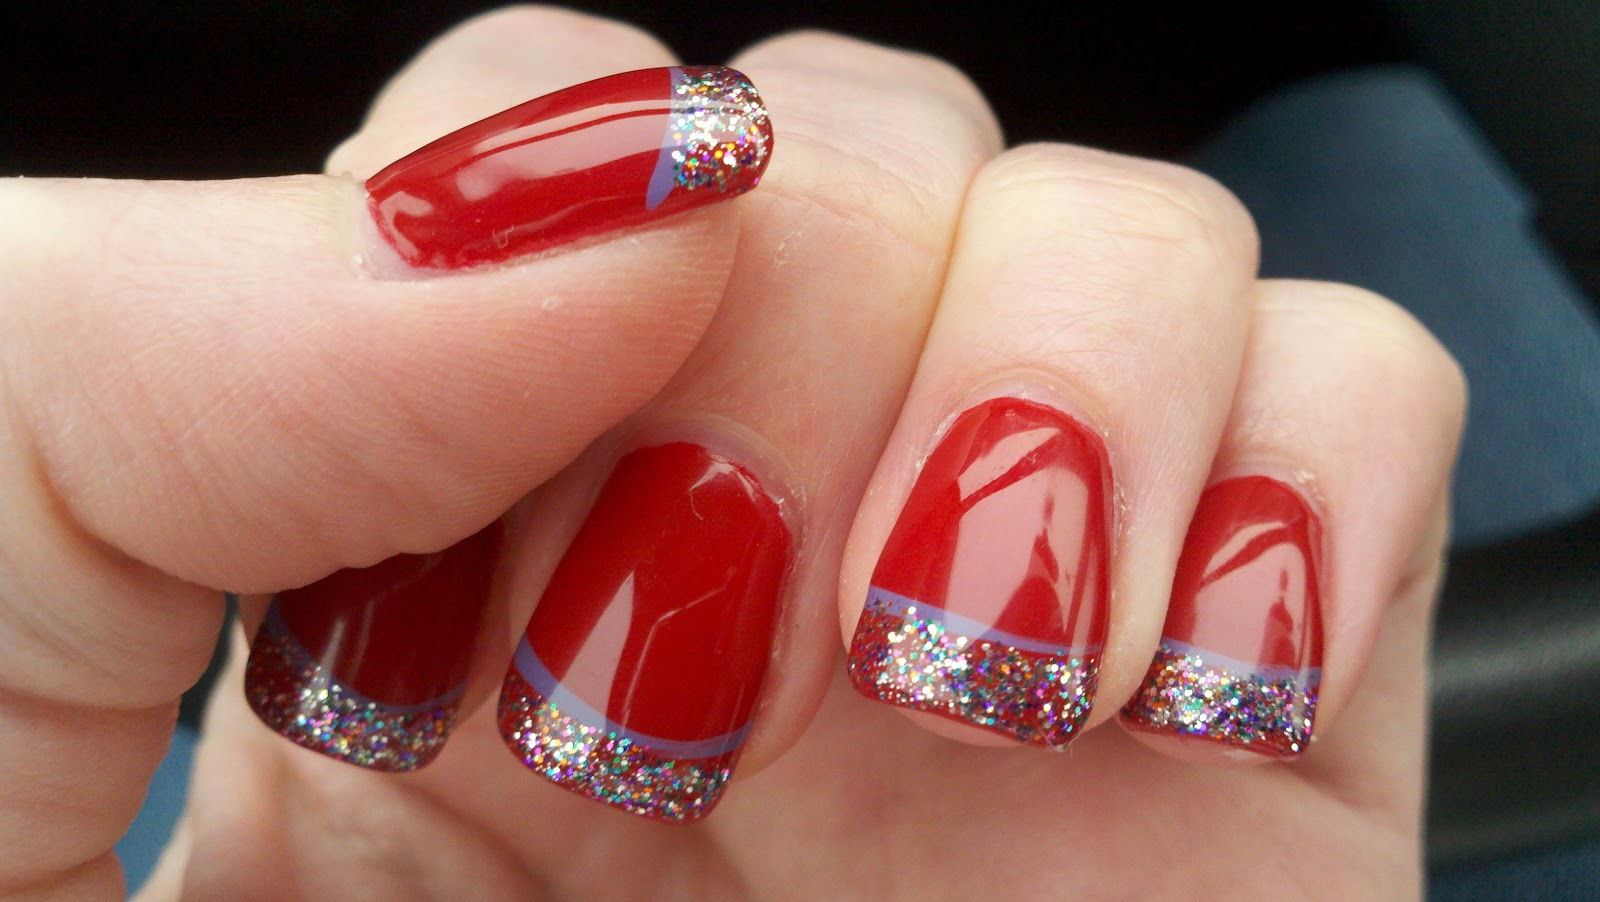 Best nail art blog most popular red nail art designs of 2016 it is most popular and as well as unique design for nail art just use red and black nail polish and male your nails pretty prinsesfo Image collections